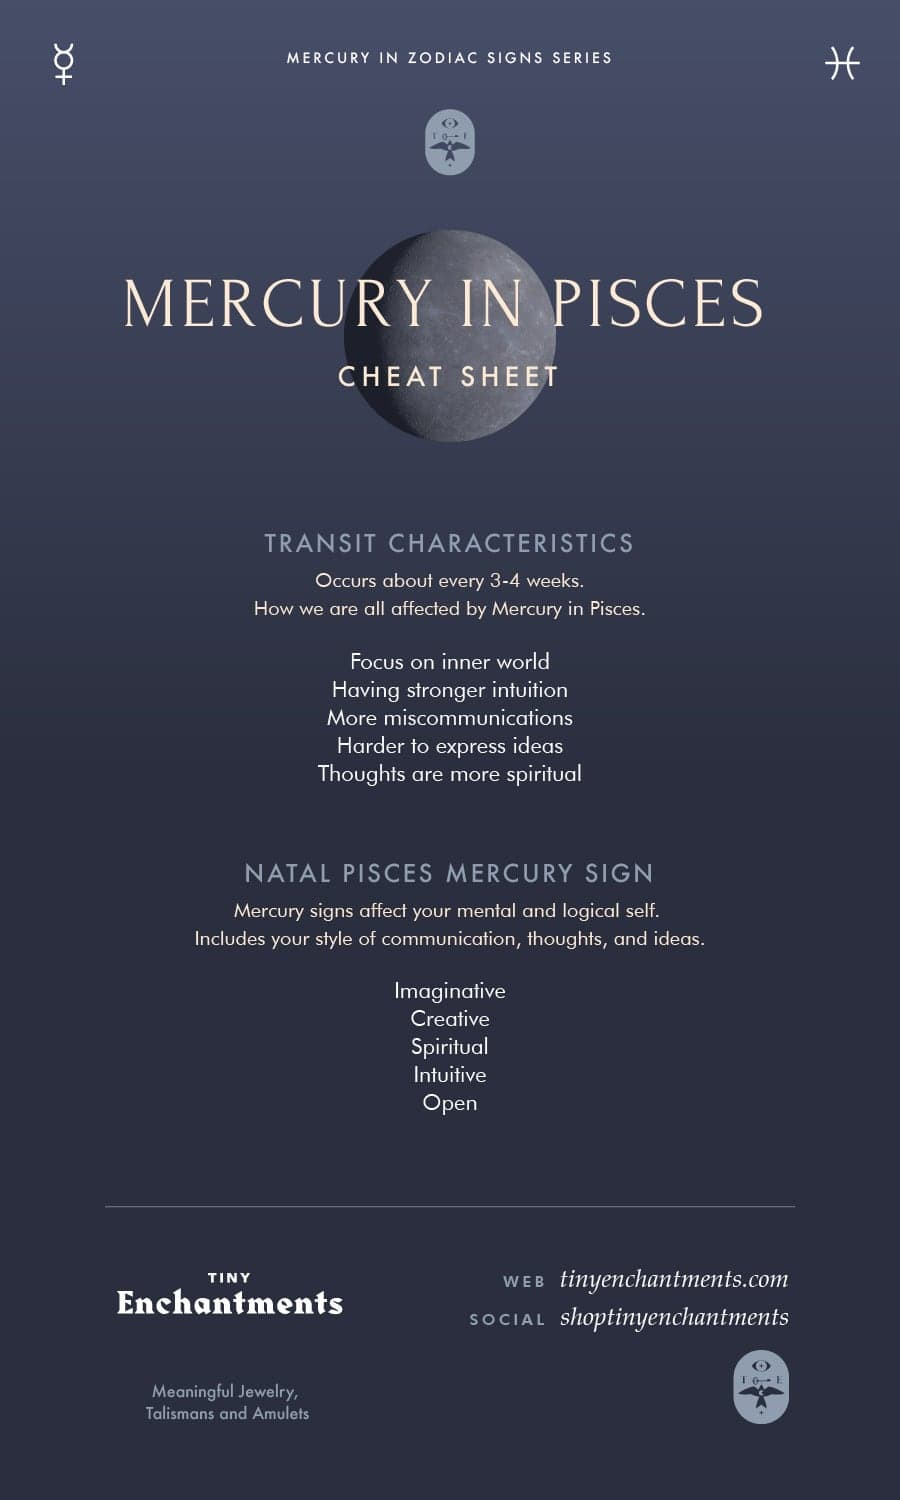 The Pisces Mercury - Pisces Mercury Sign and Mercury in Pisces Transit Meanings Infographic